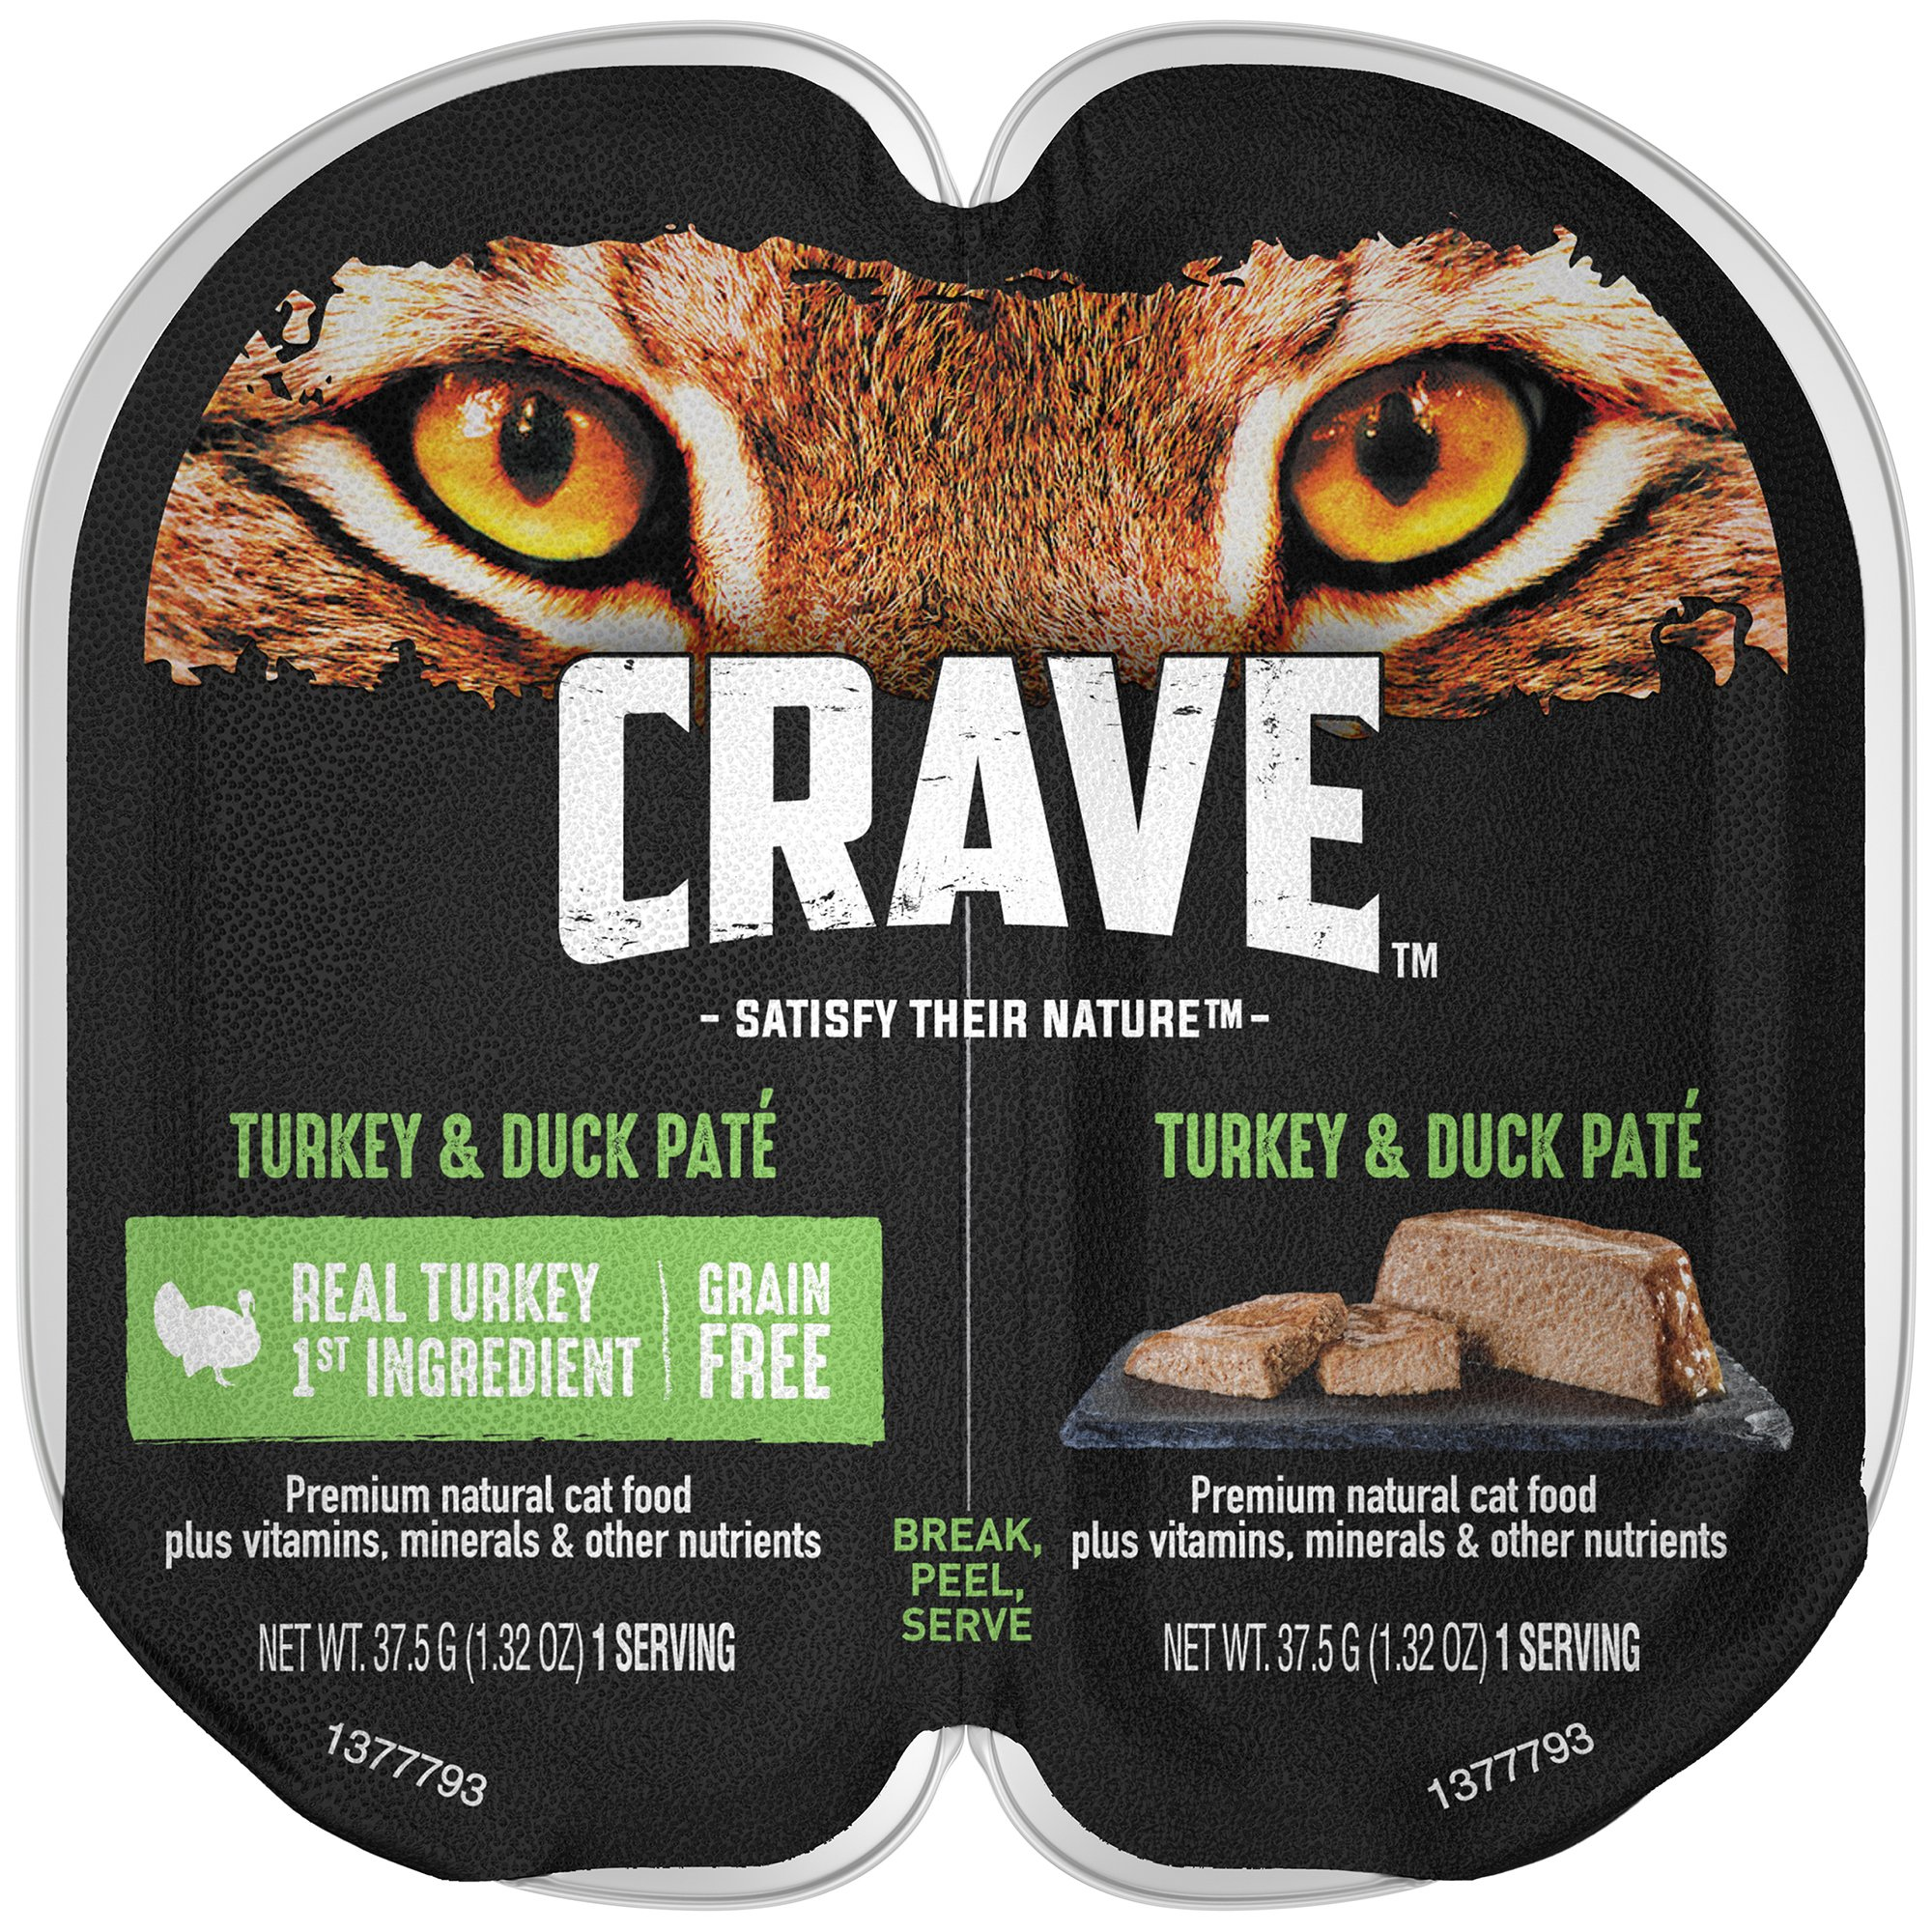 Crave Grain Free Adult High Protein Wet Cat Food Paté Turkey & Duck, (24) 2.6 Oz. Twin-Pack Trays by CRAVE